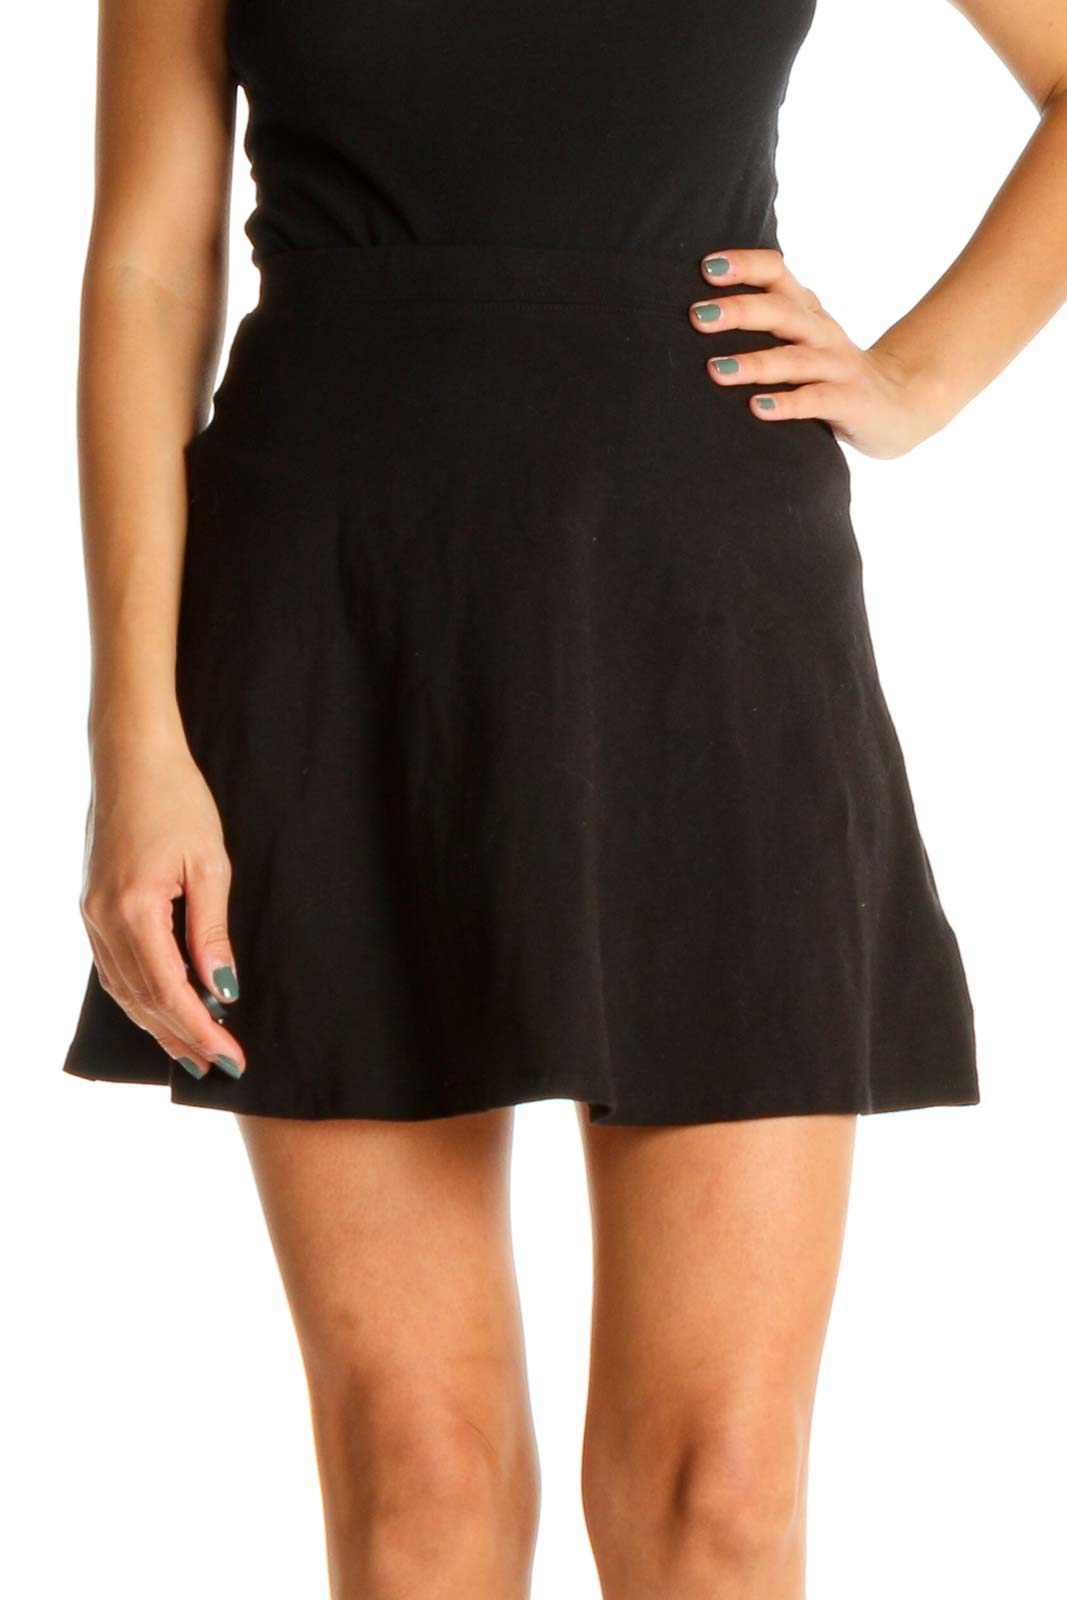 Black Solid Chic A-Line Skirt Front